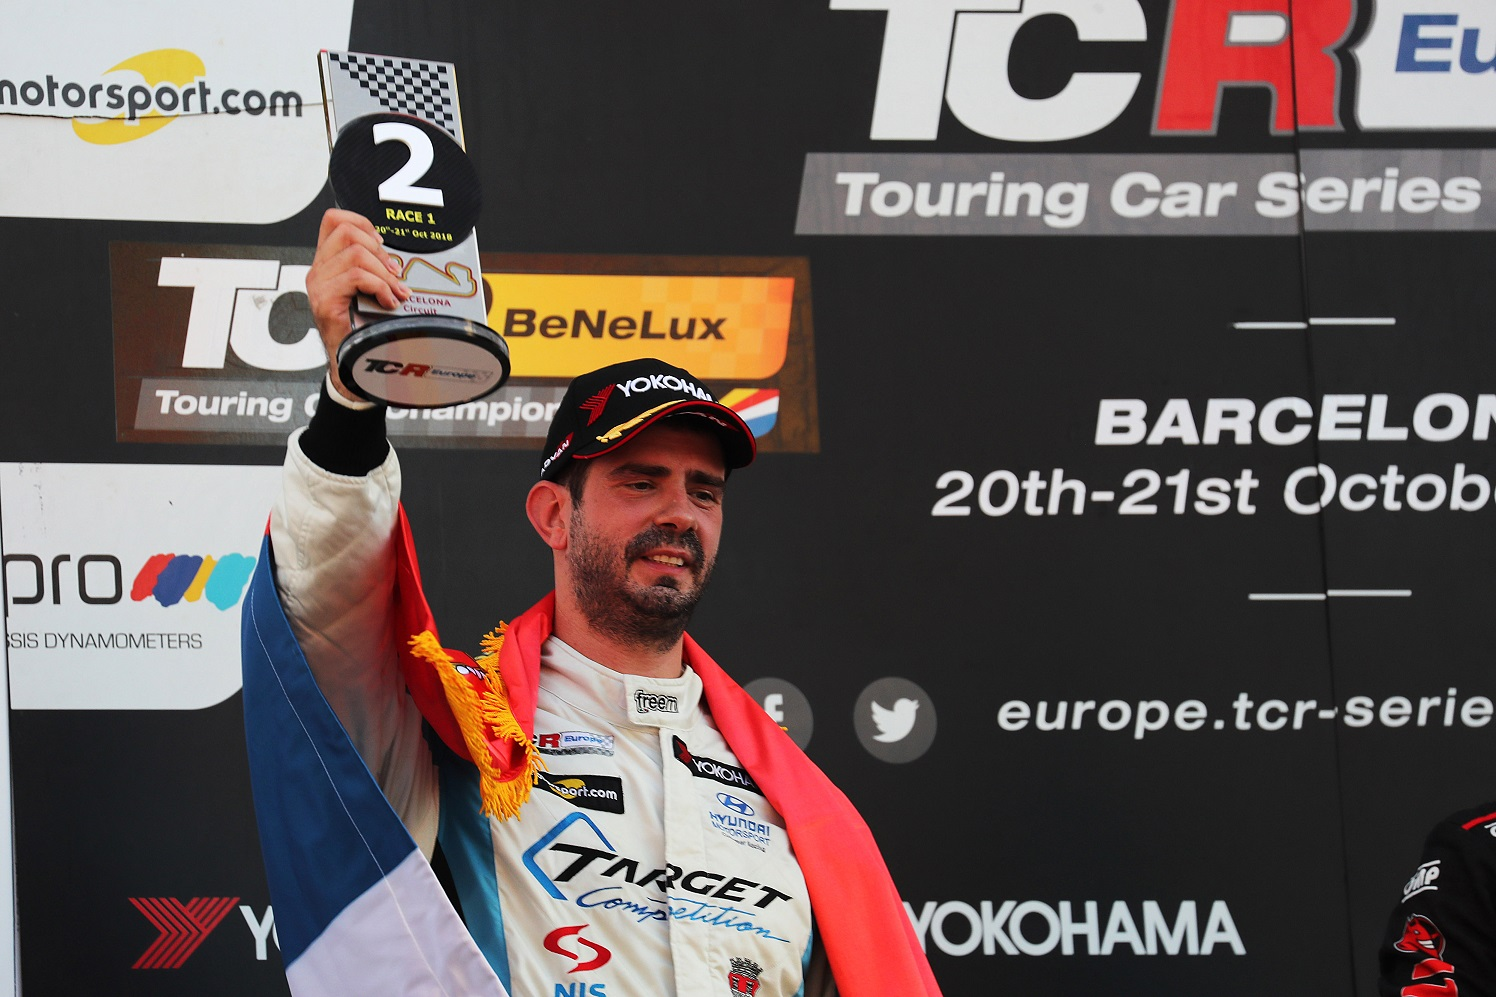 TCR Europe Barcelona, Spain 19 - 21 October 2018